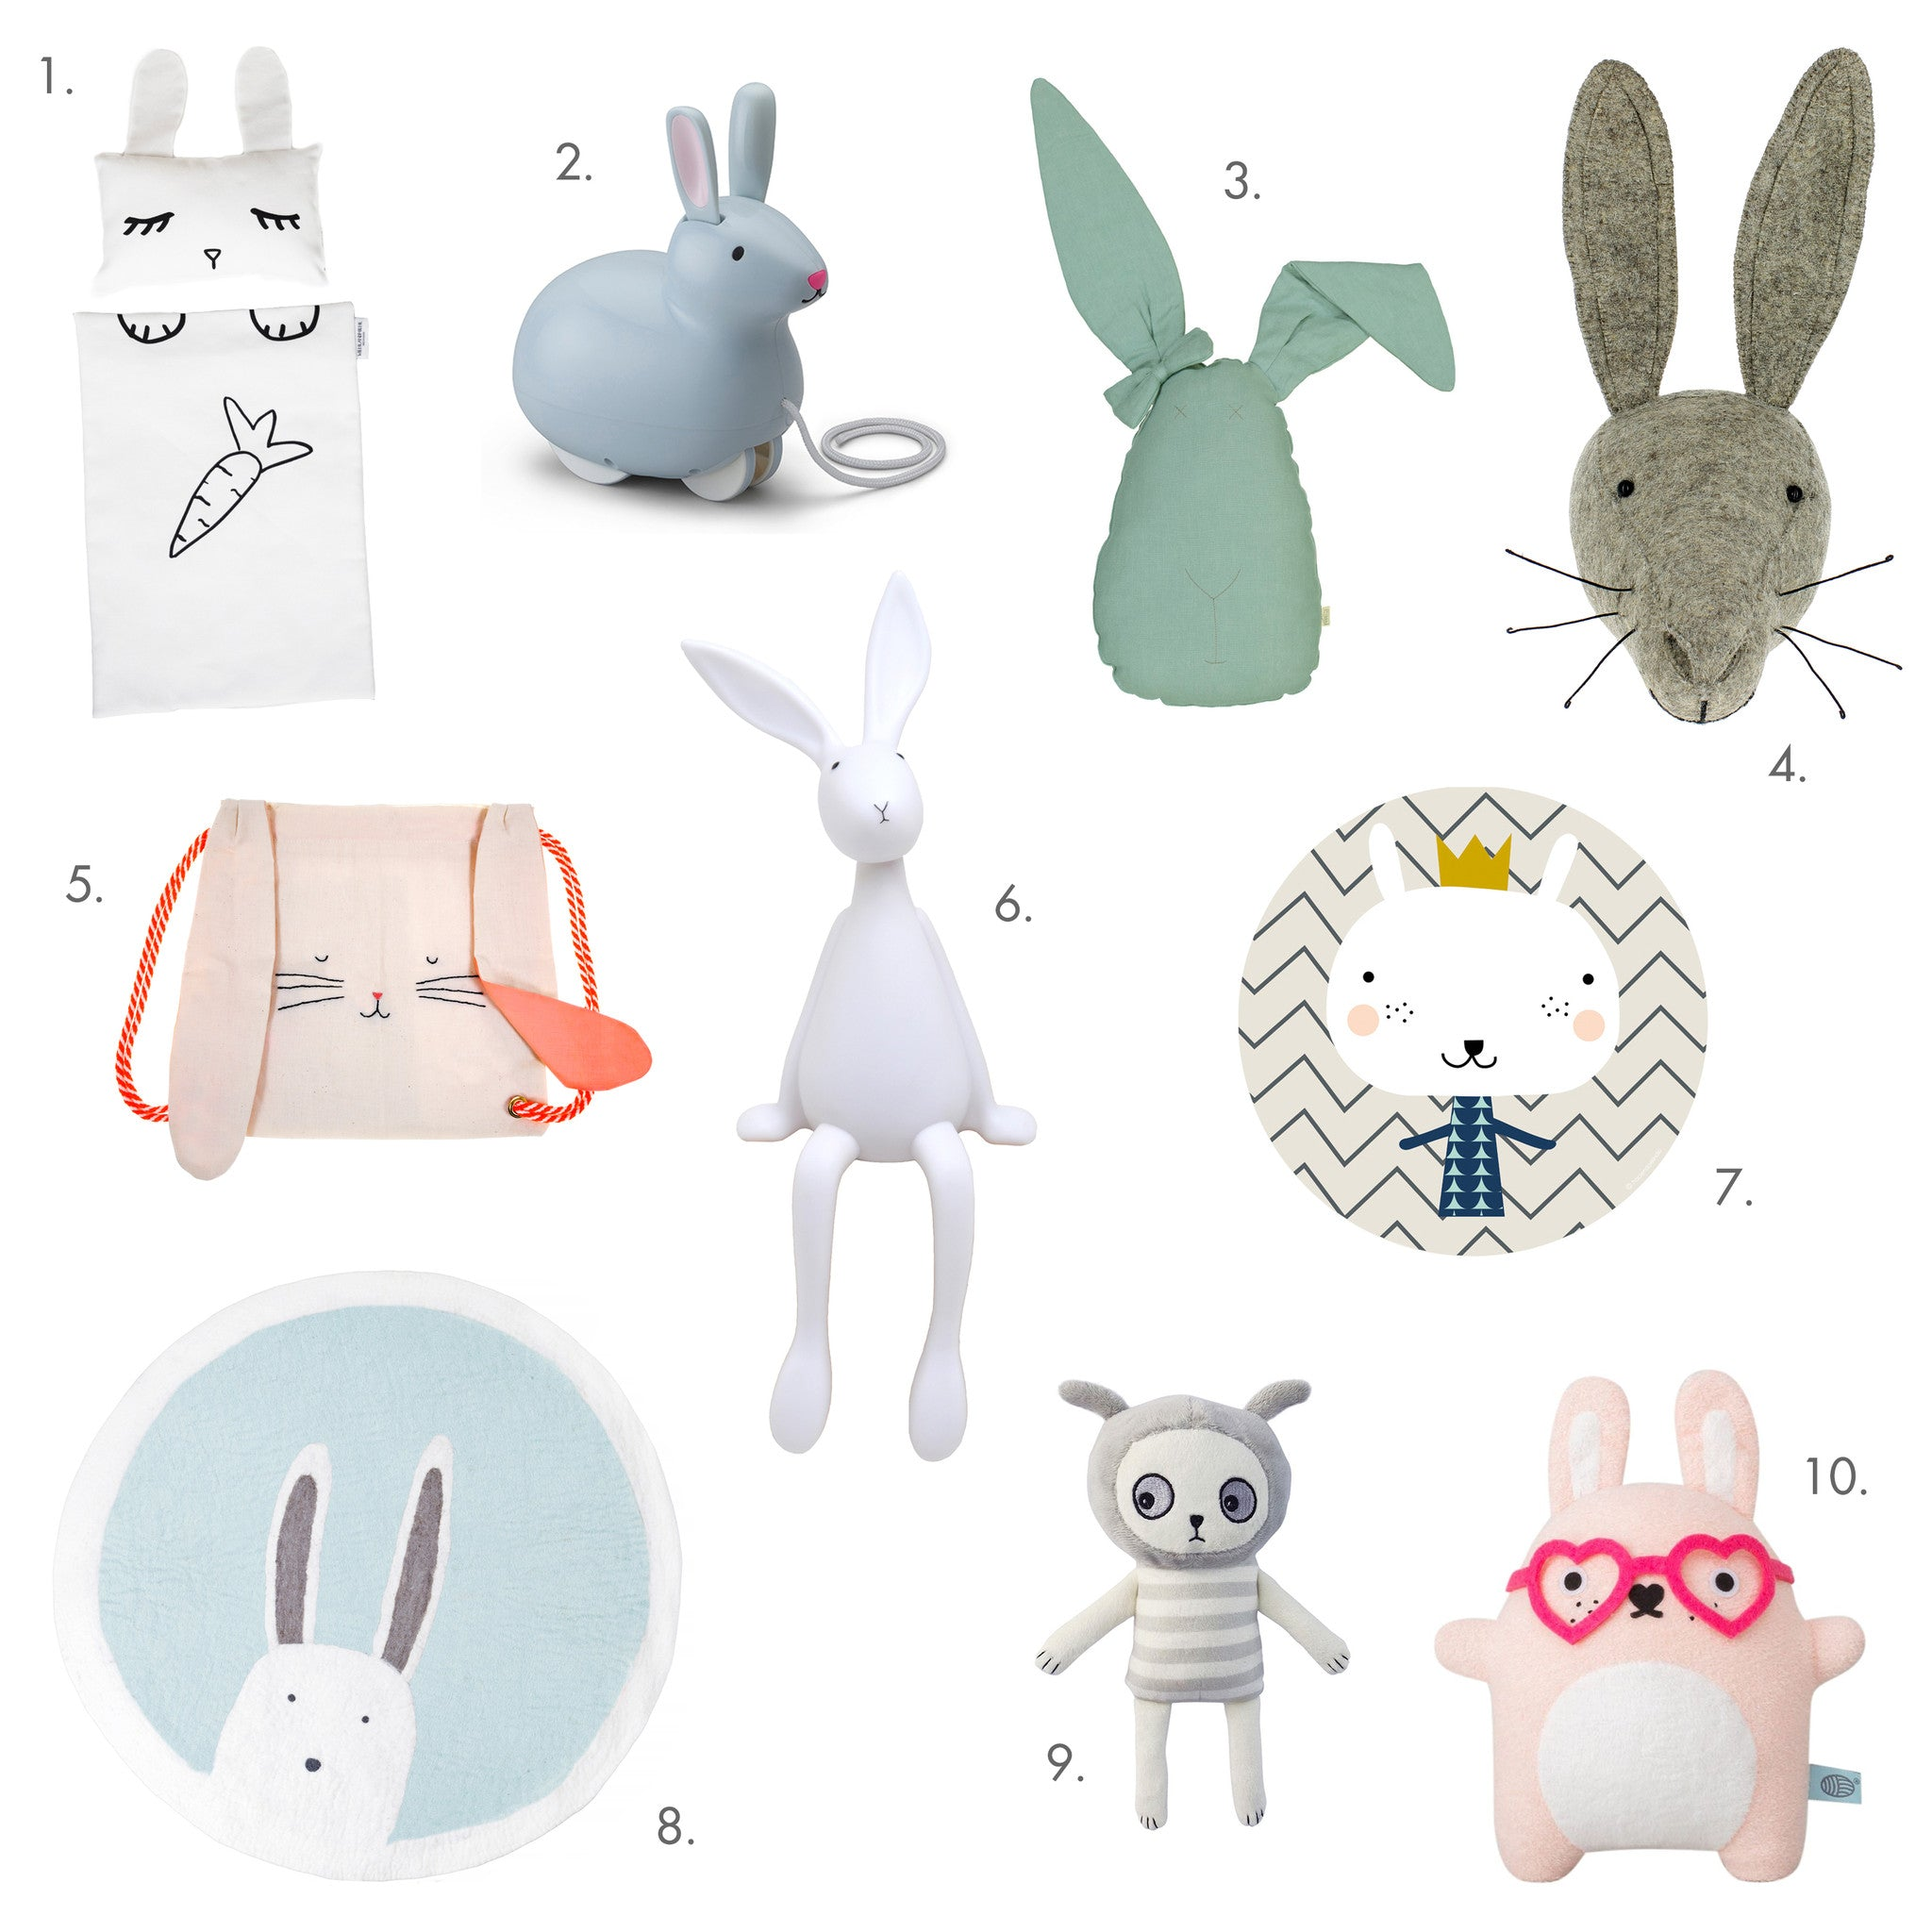 Bunny Rabbit Toys and Accessories from Bobby Rabbit.